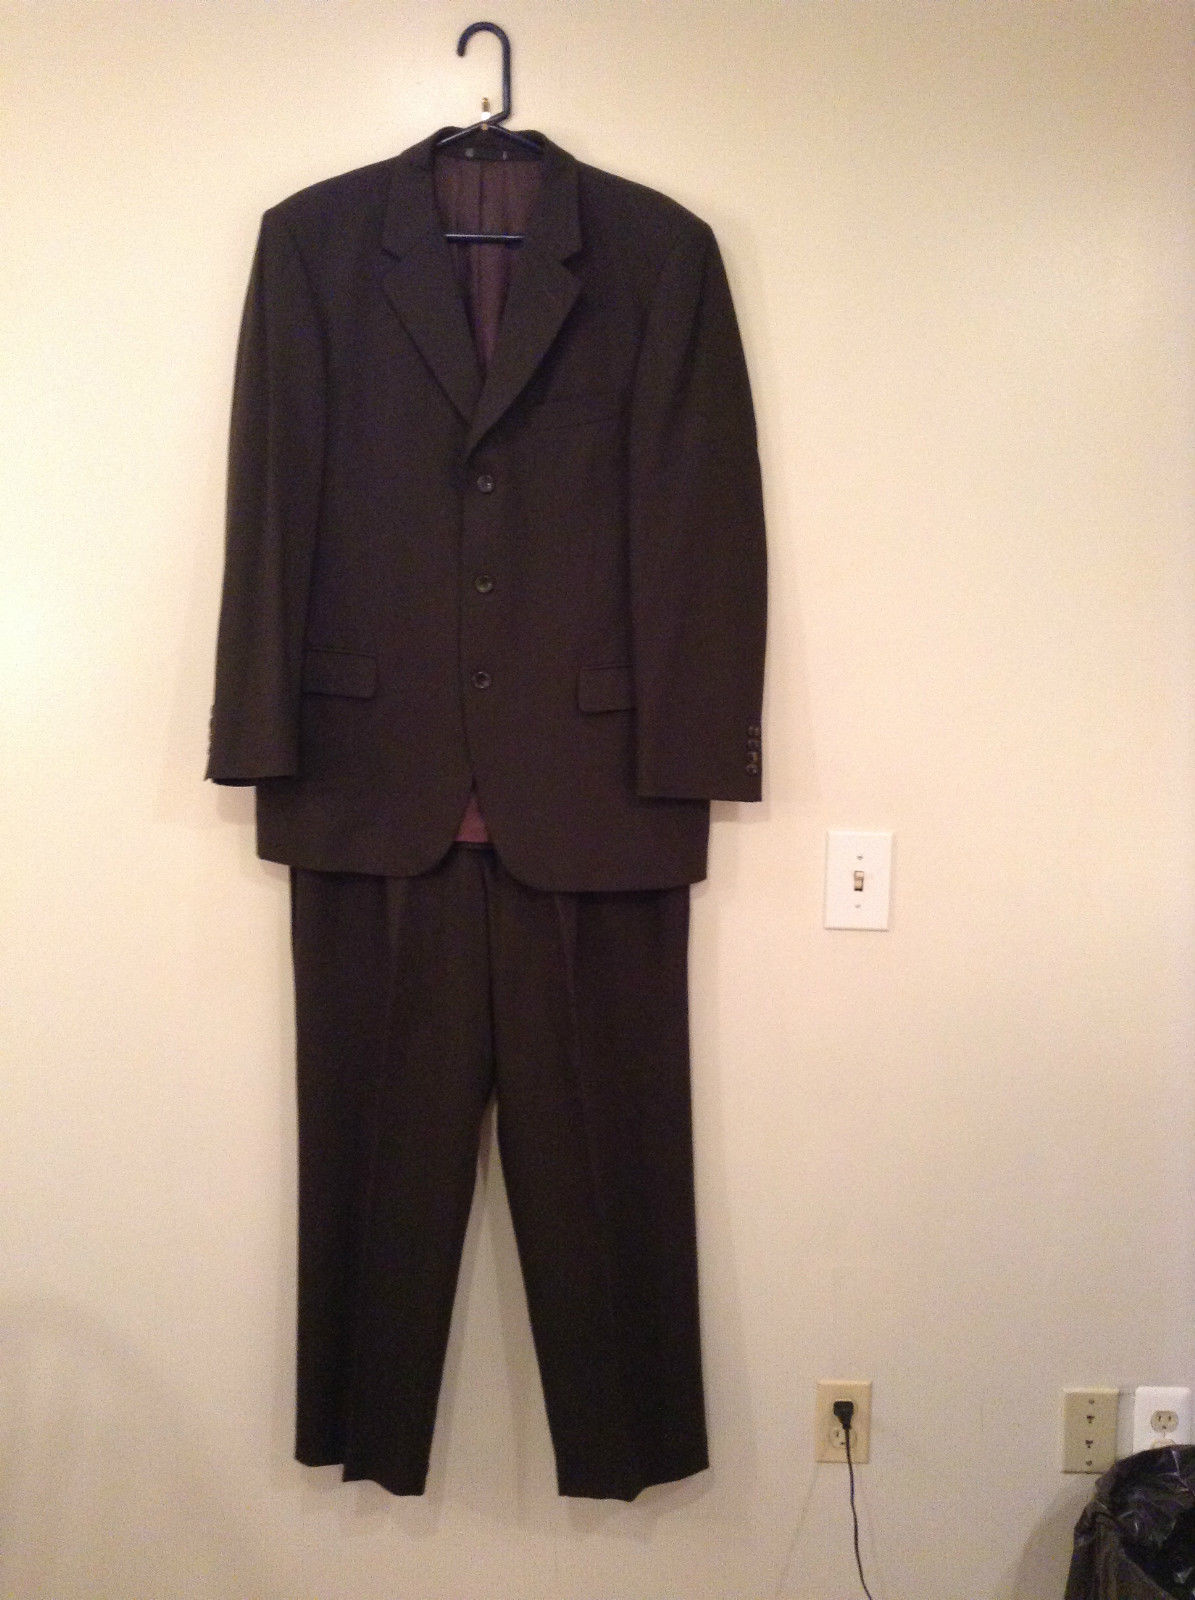 Emanuel Ungaro Dark Brown Jacket and Pant Suit 100 Percent Wool Size 42 by 36